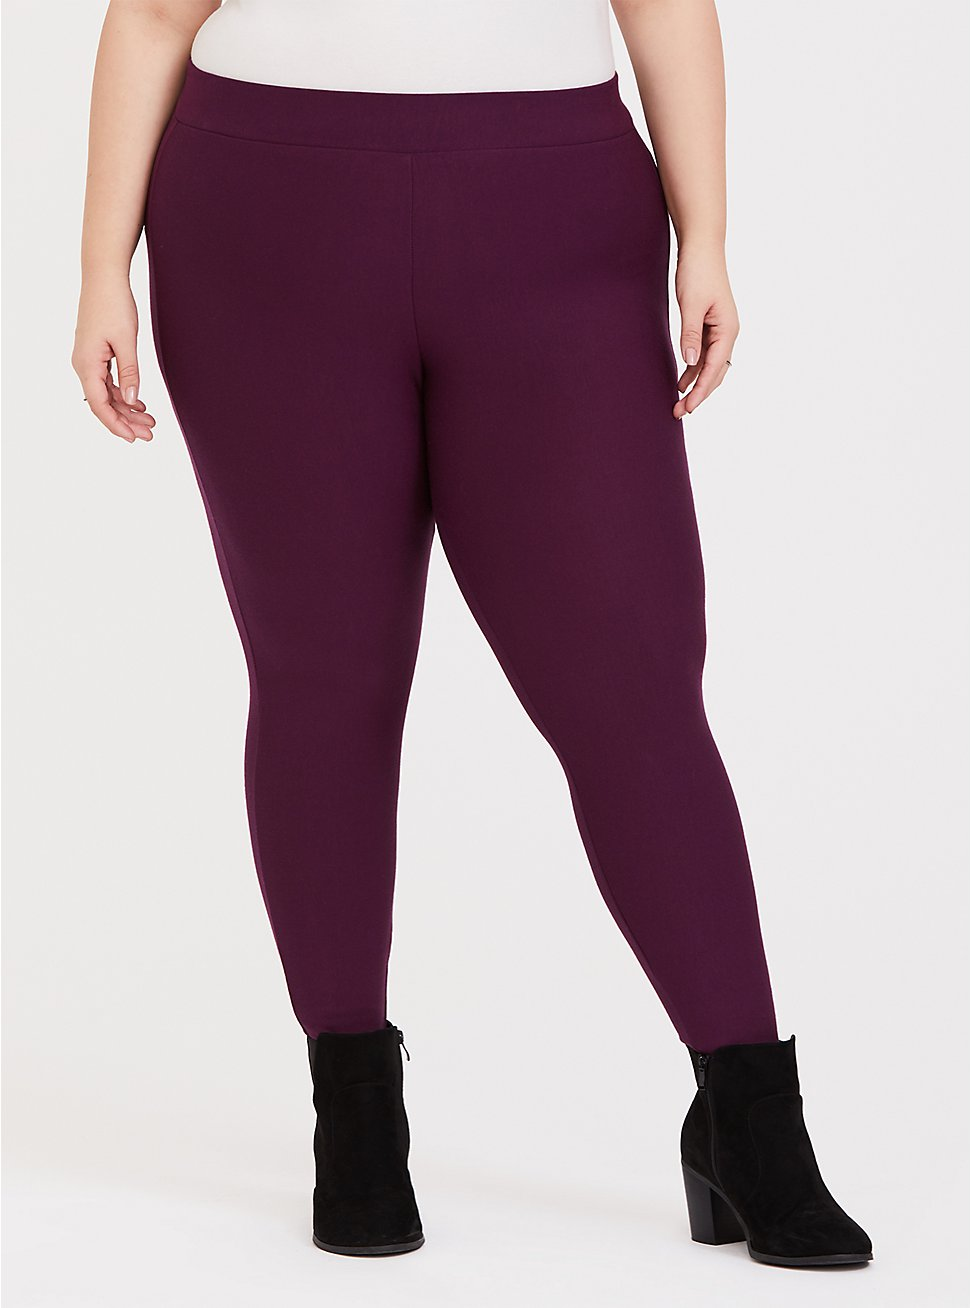 Platinum Legging - Fleece Lined Burgundy Purple, PURPLE, hi-res